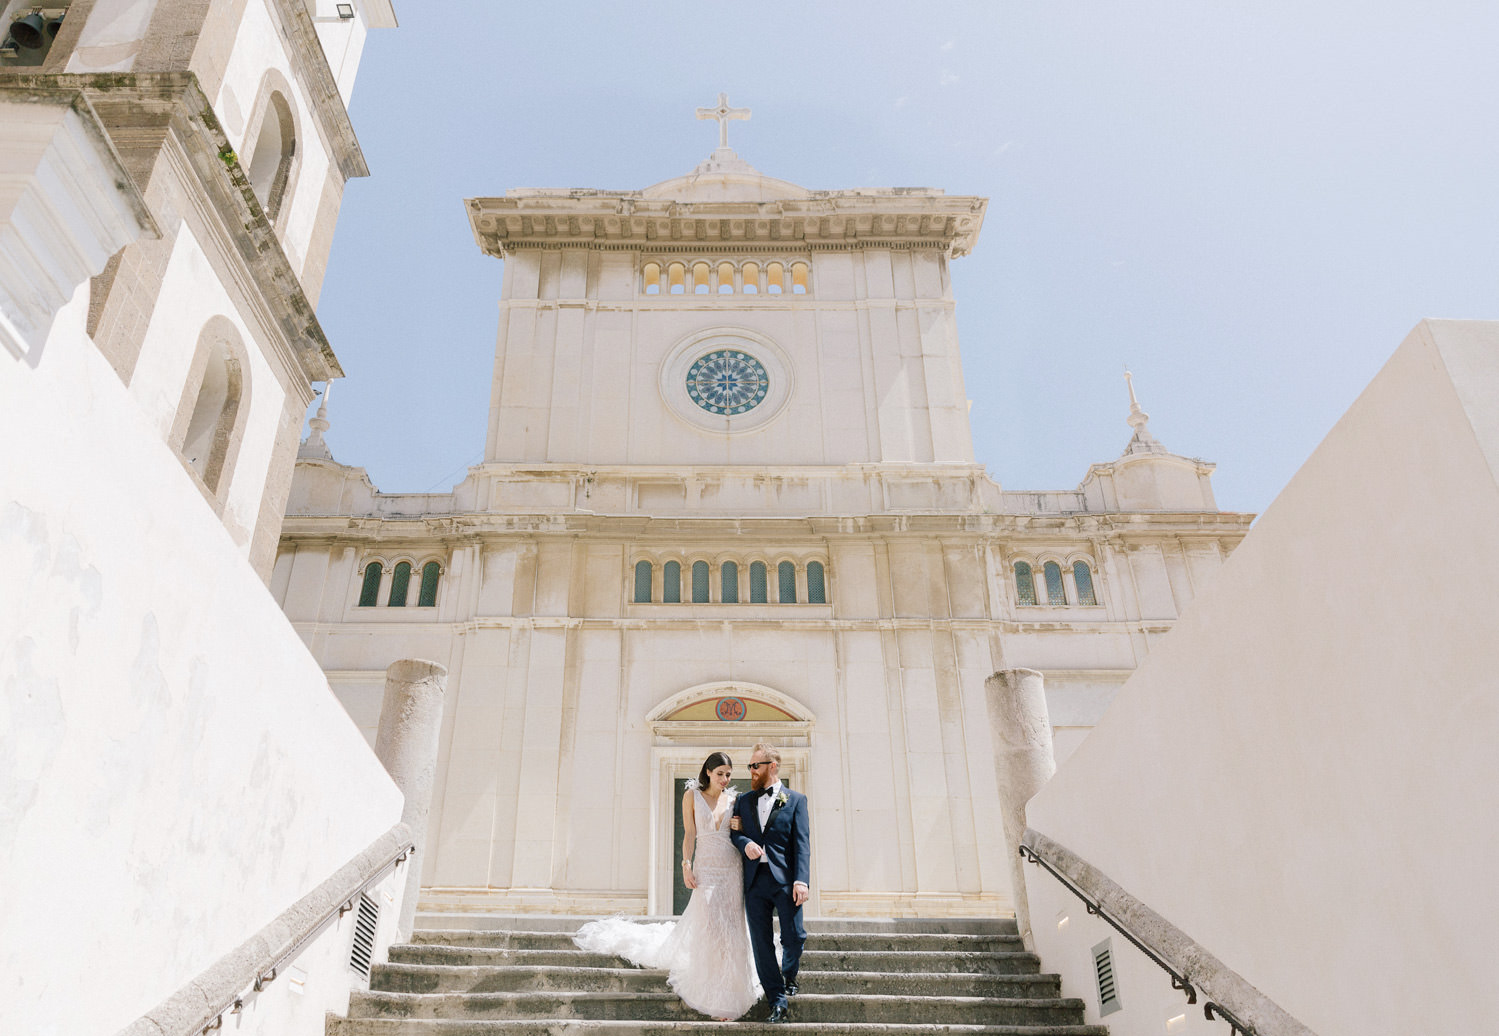 Luxury wedding at Villa San Giacomo in Positano | Stylish bride's getting ready | Photo: Camilla Anchisi Photography | Planning: Weddings Italy